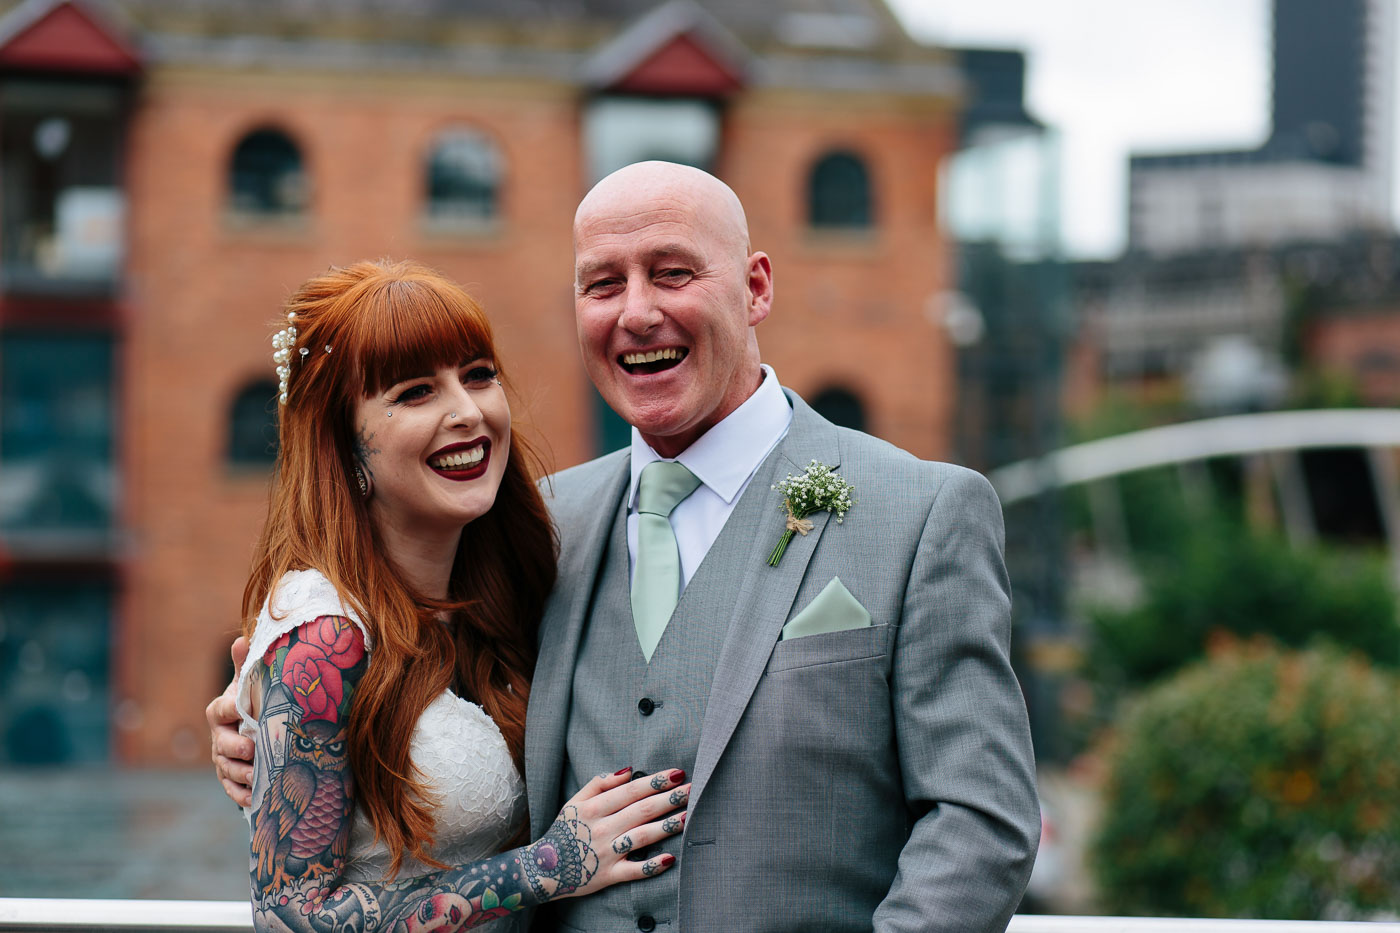 Emma with her dad on the balcony at castlefield rooms